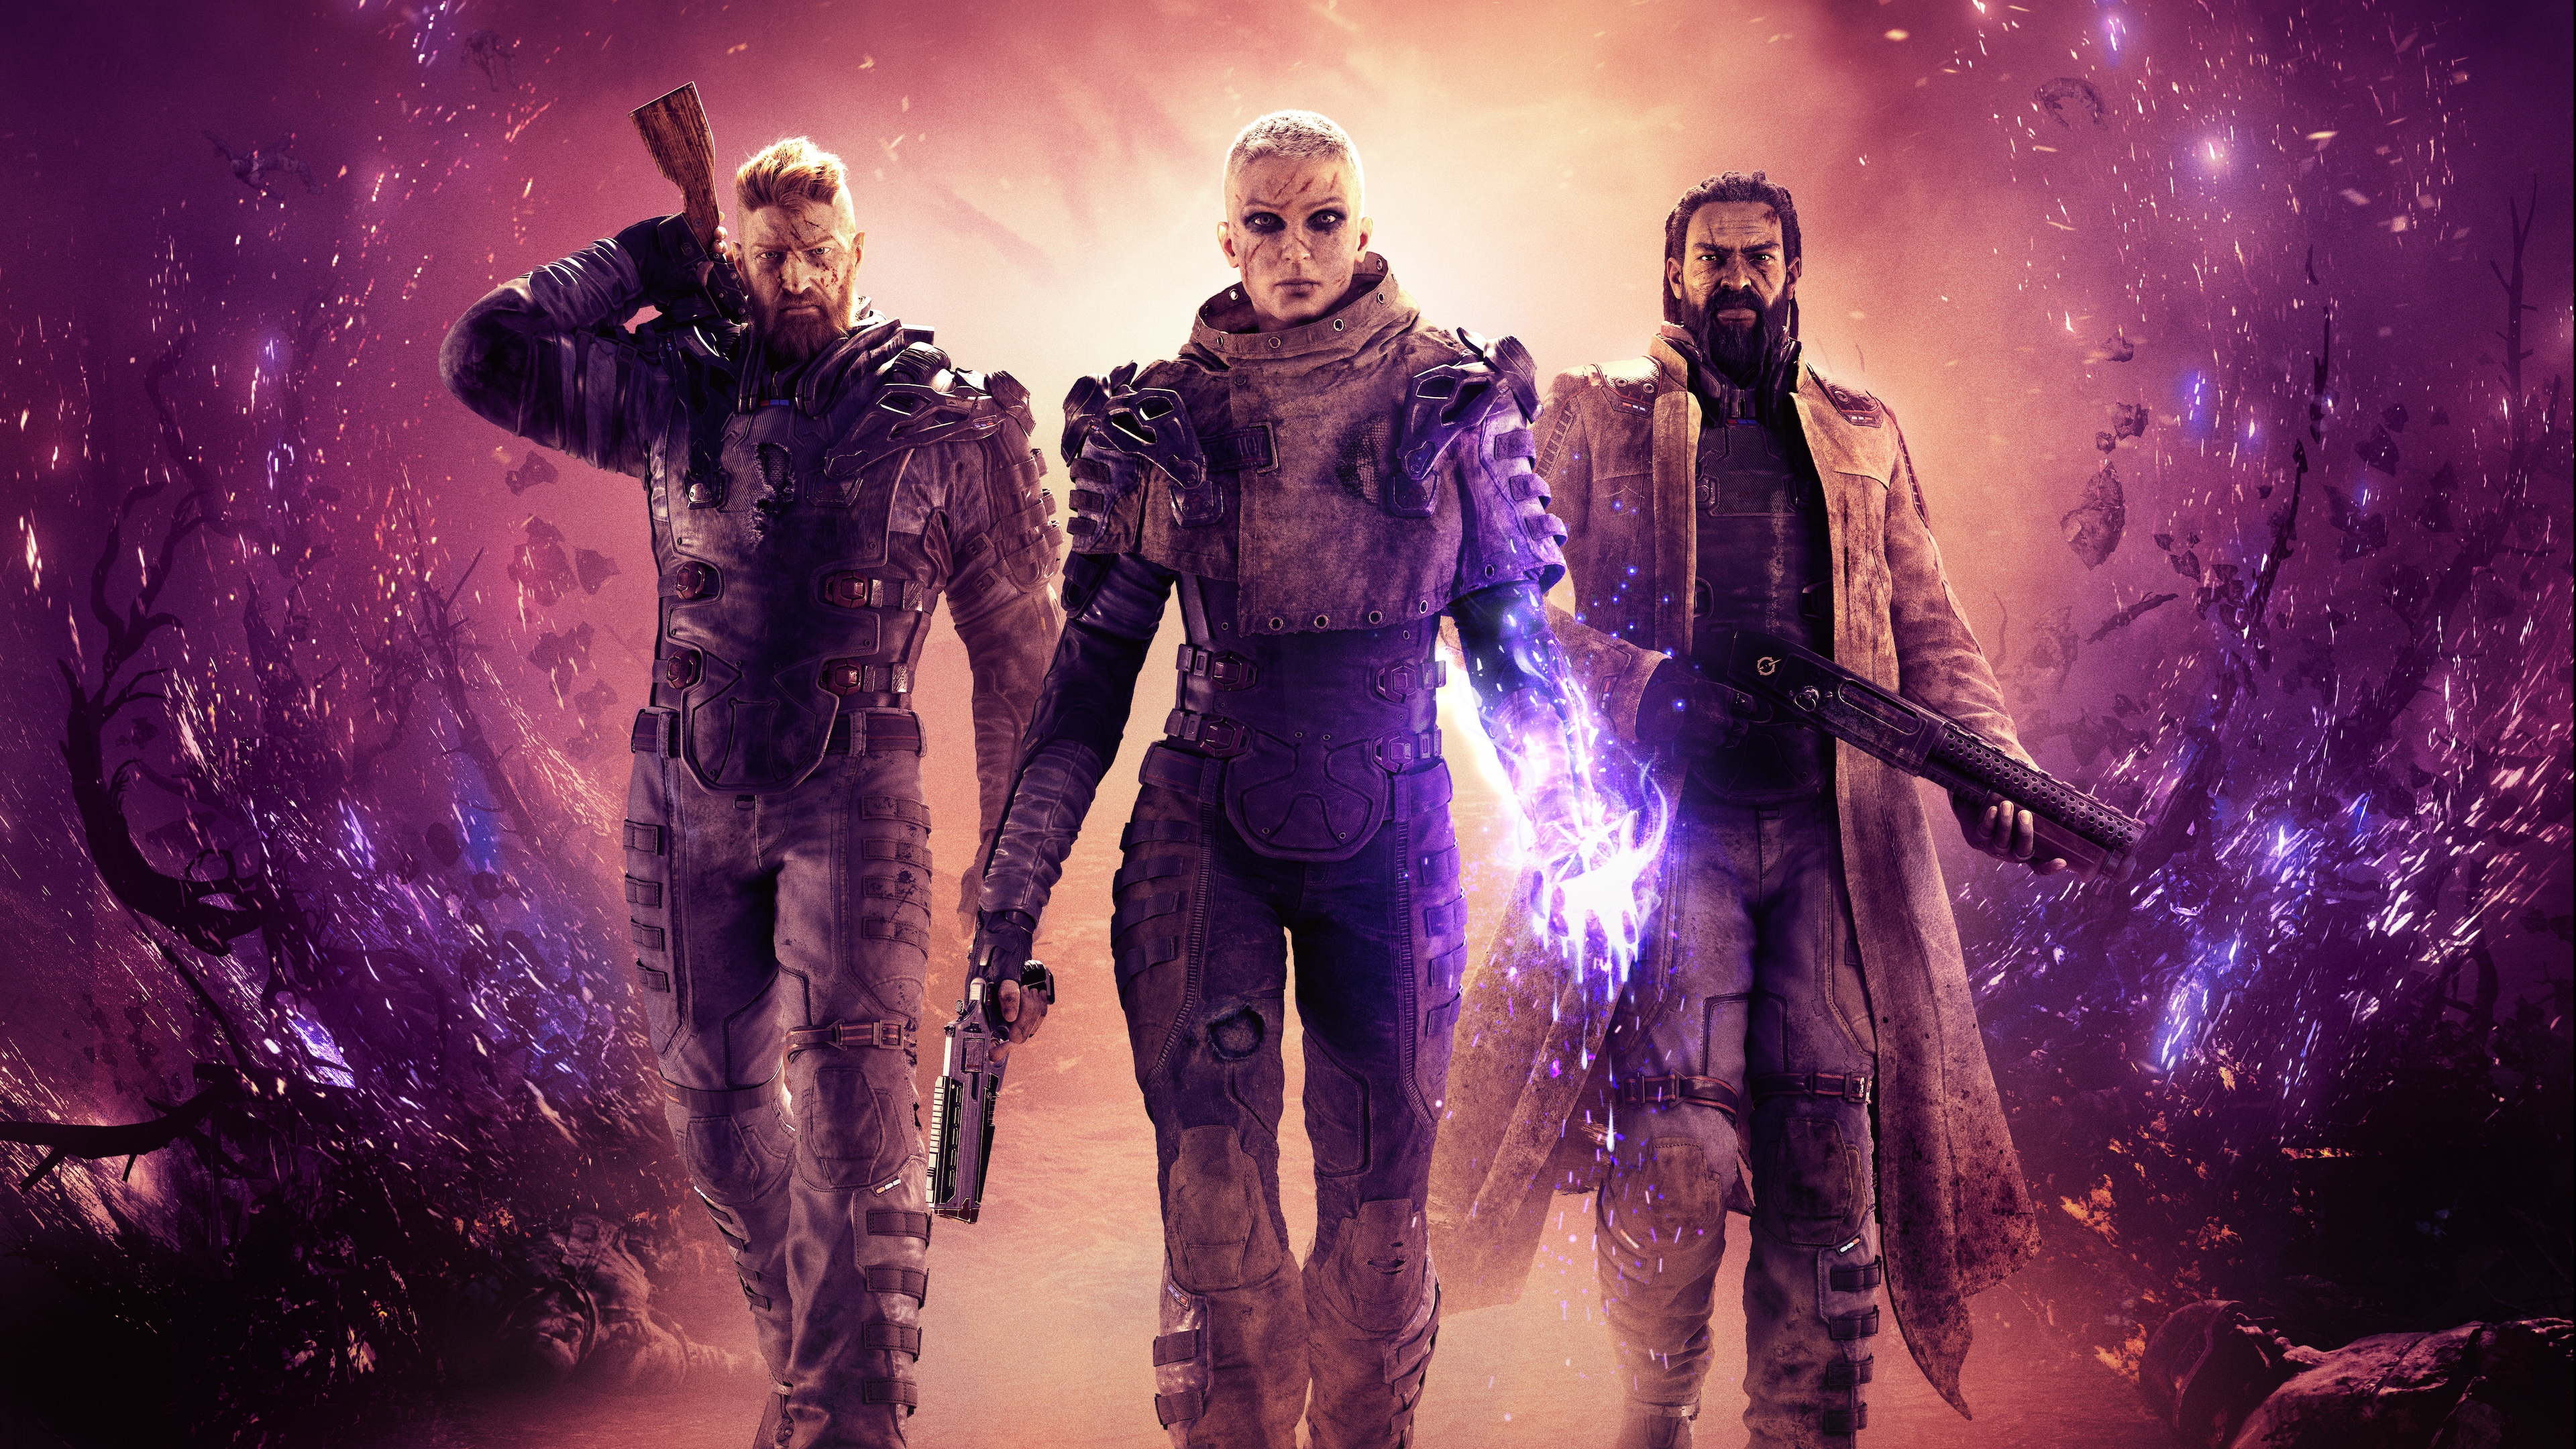 Character artwork of three futuristic soldiers from Outriders